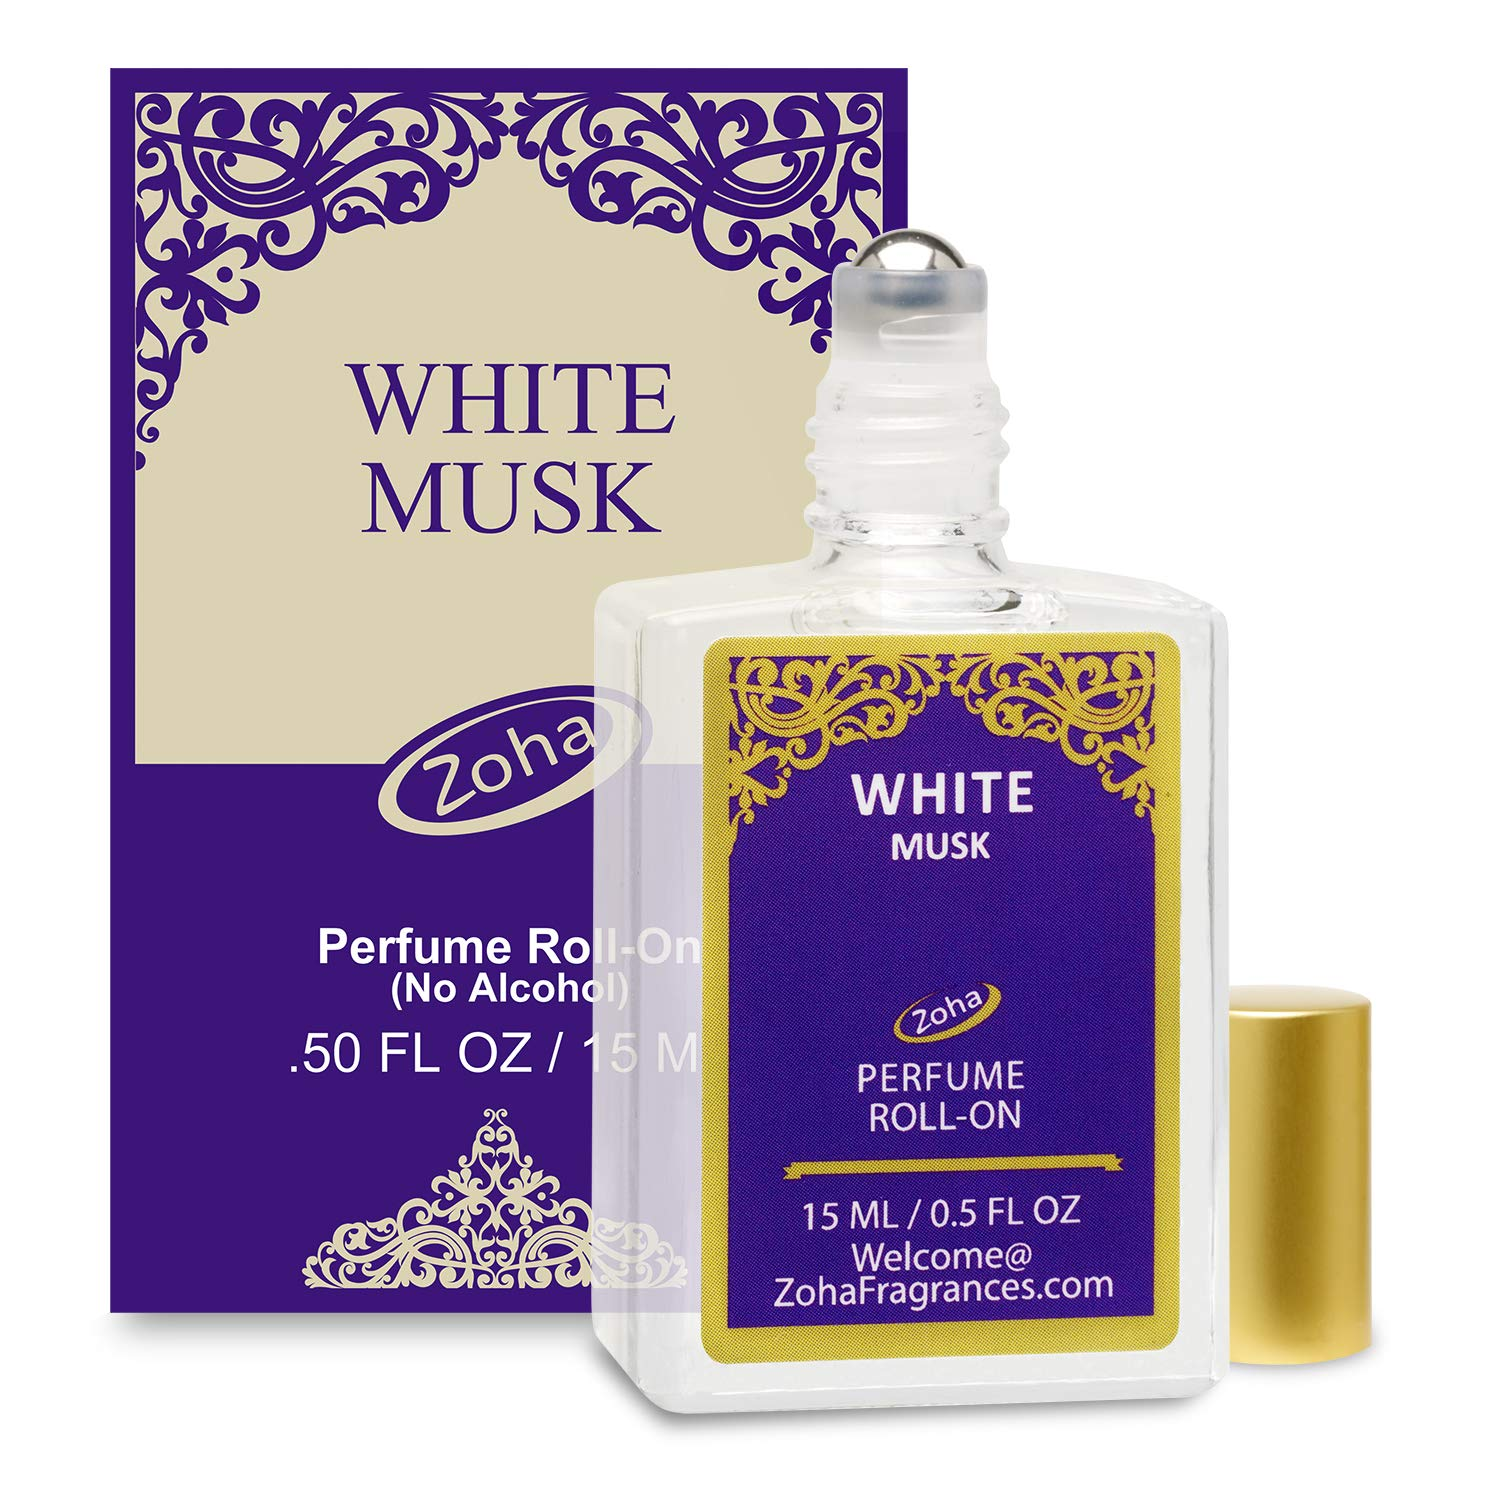 White Musk Perfume Oil Roll-On (No Alcohol) - Essential Oils and Clean Beauty Perfumes for Women and Men by Zoha Fragrances, 15 ml / 0.50 fl Oz